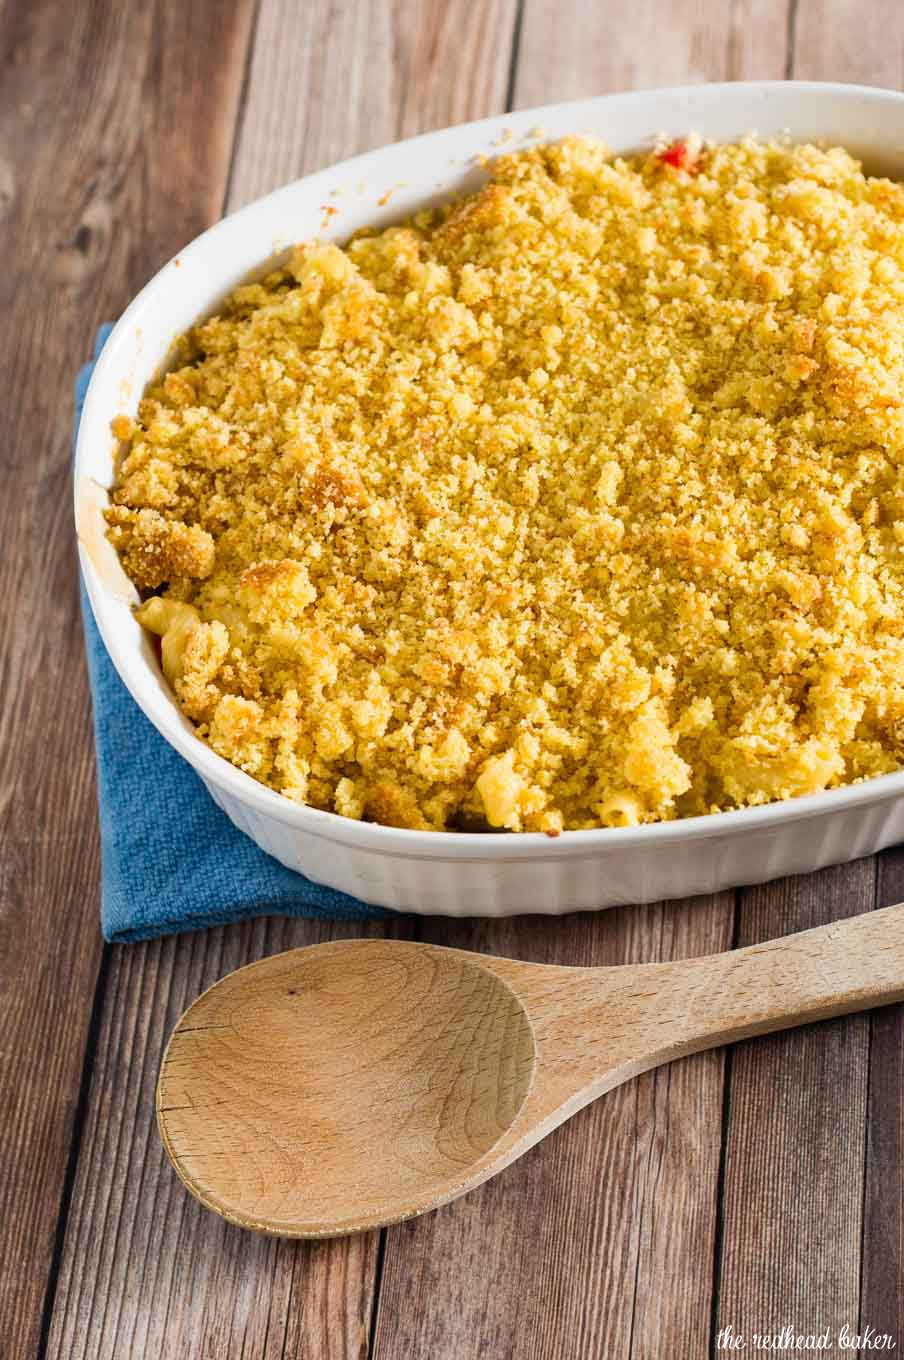 Southwestern mac and cheese is chock full of tex-mex flavors, contrasting textures, and a hint of spicy pepper, with a sweet buttery cornbread topping.